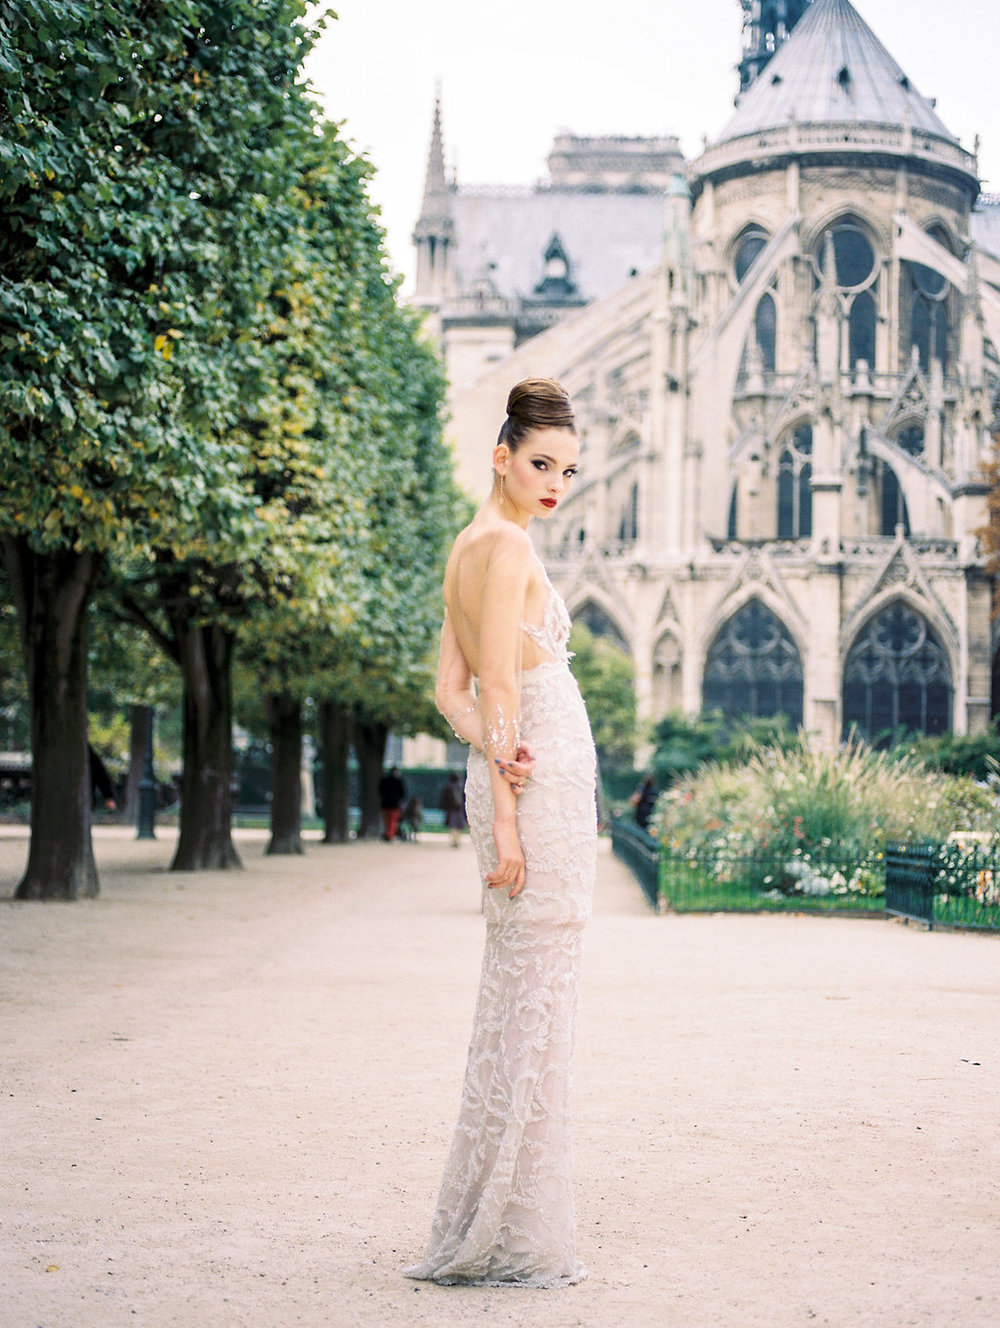 paris elopement inspiration editorial destination fine art film wedding photographer lissa ryan photography